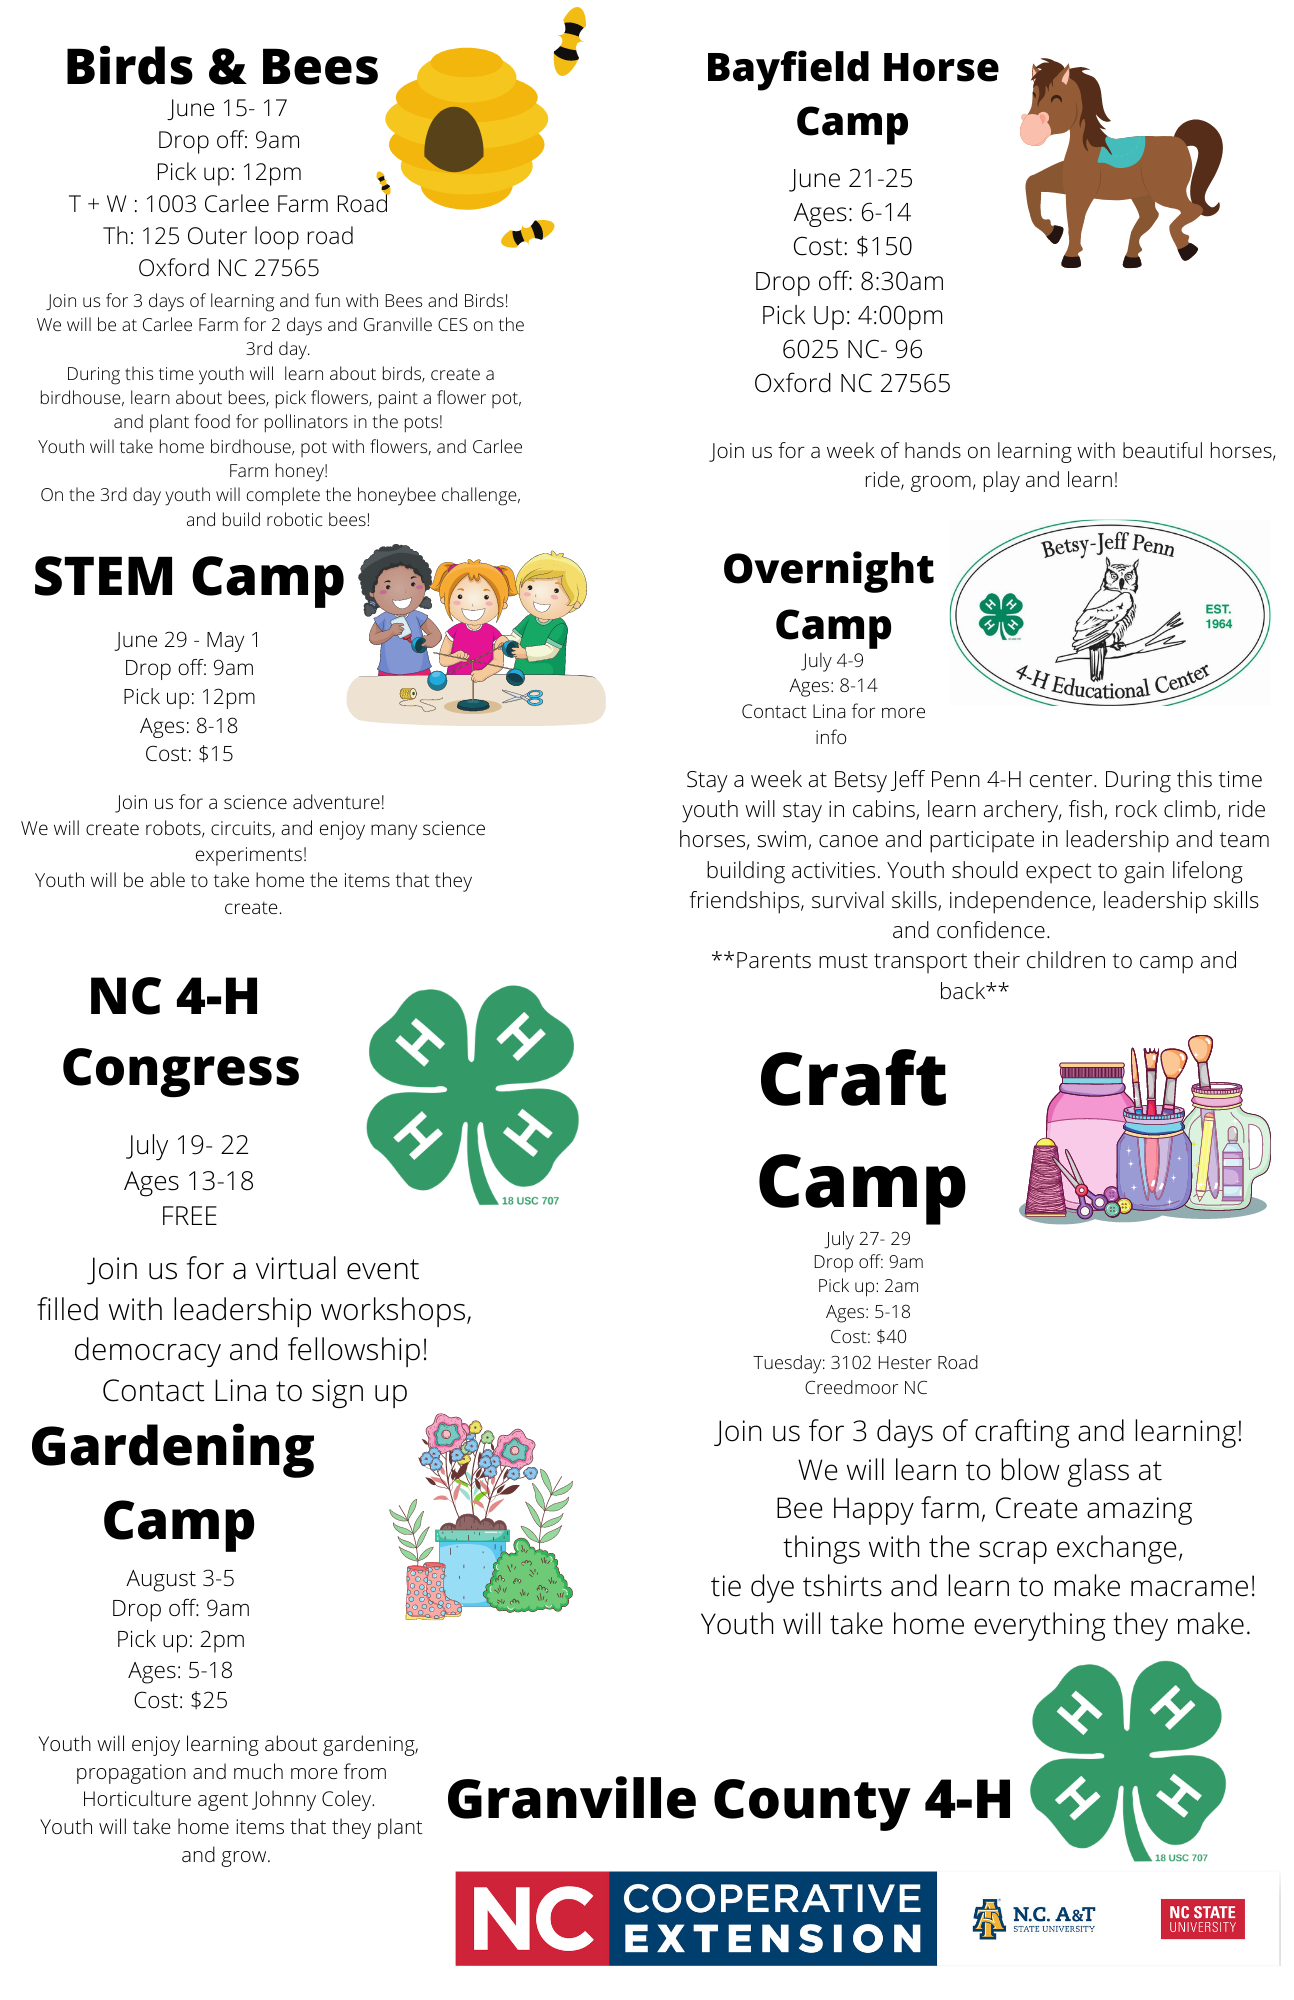 Summer Fun camps flyer image